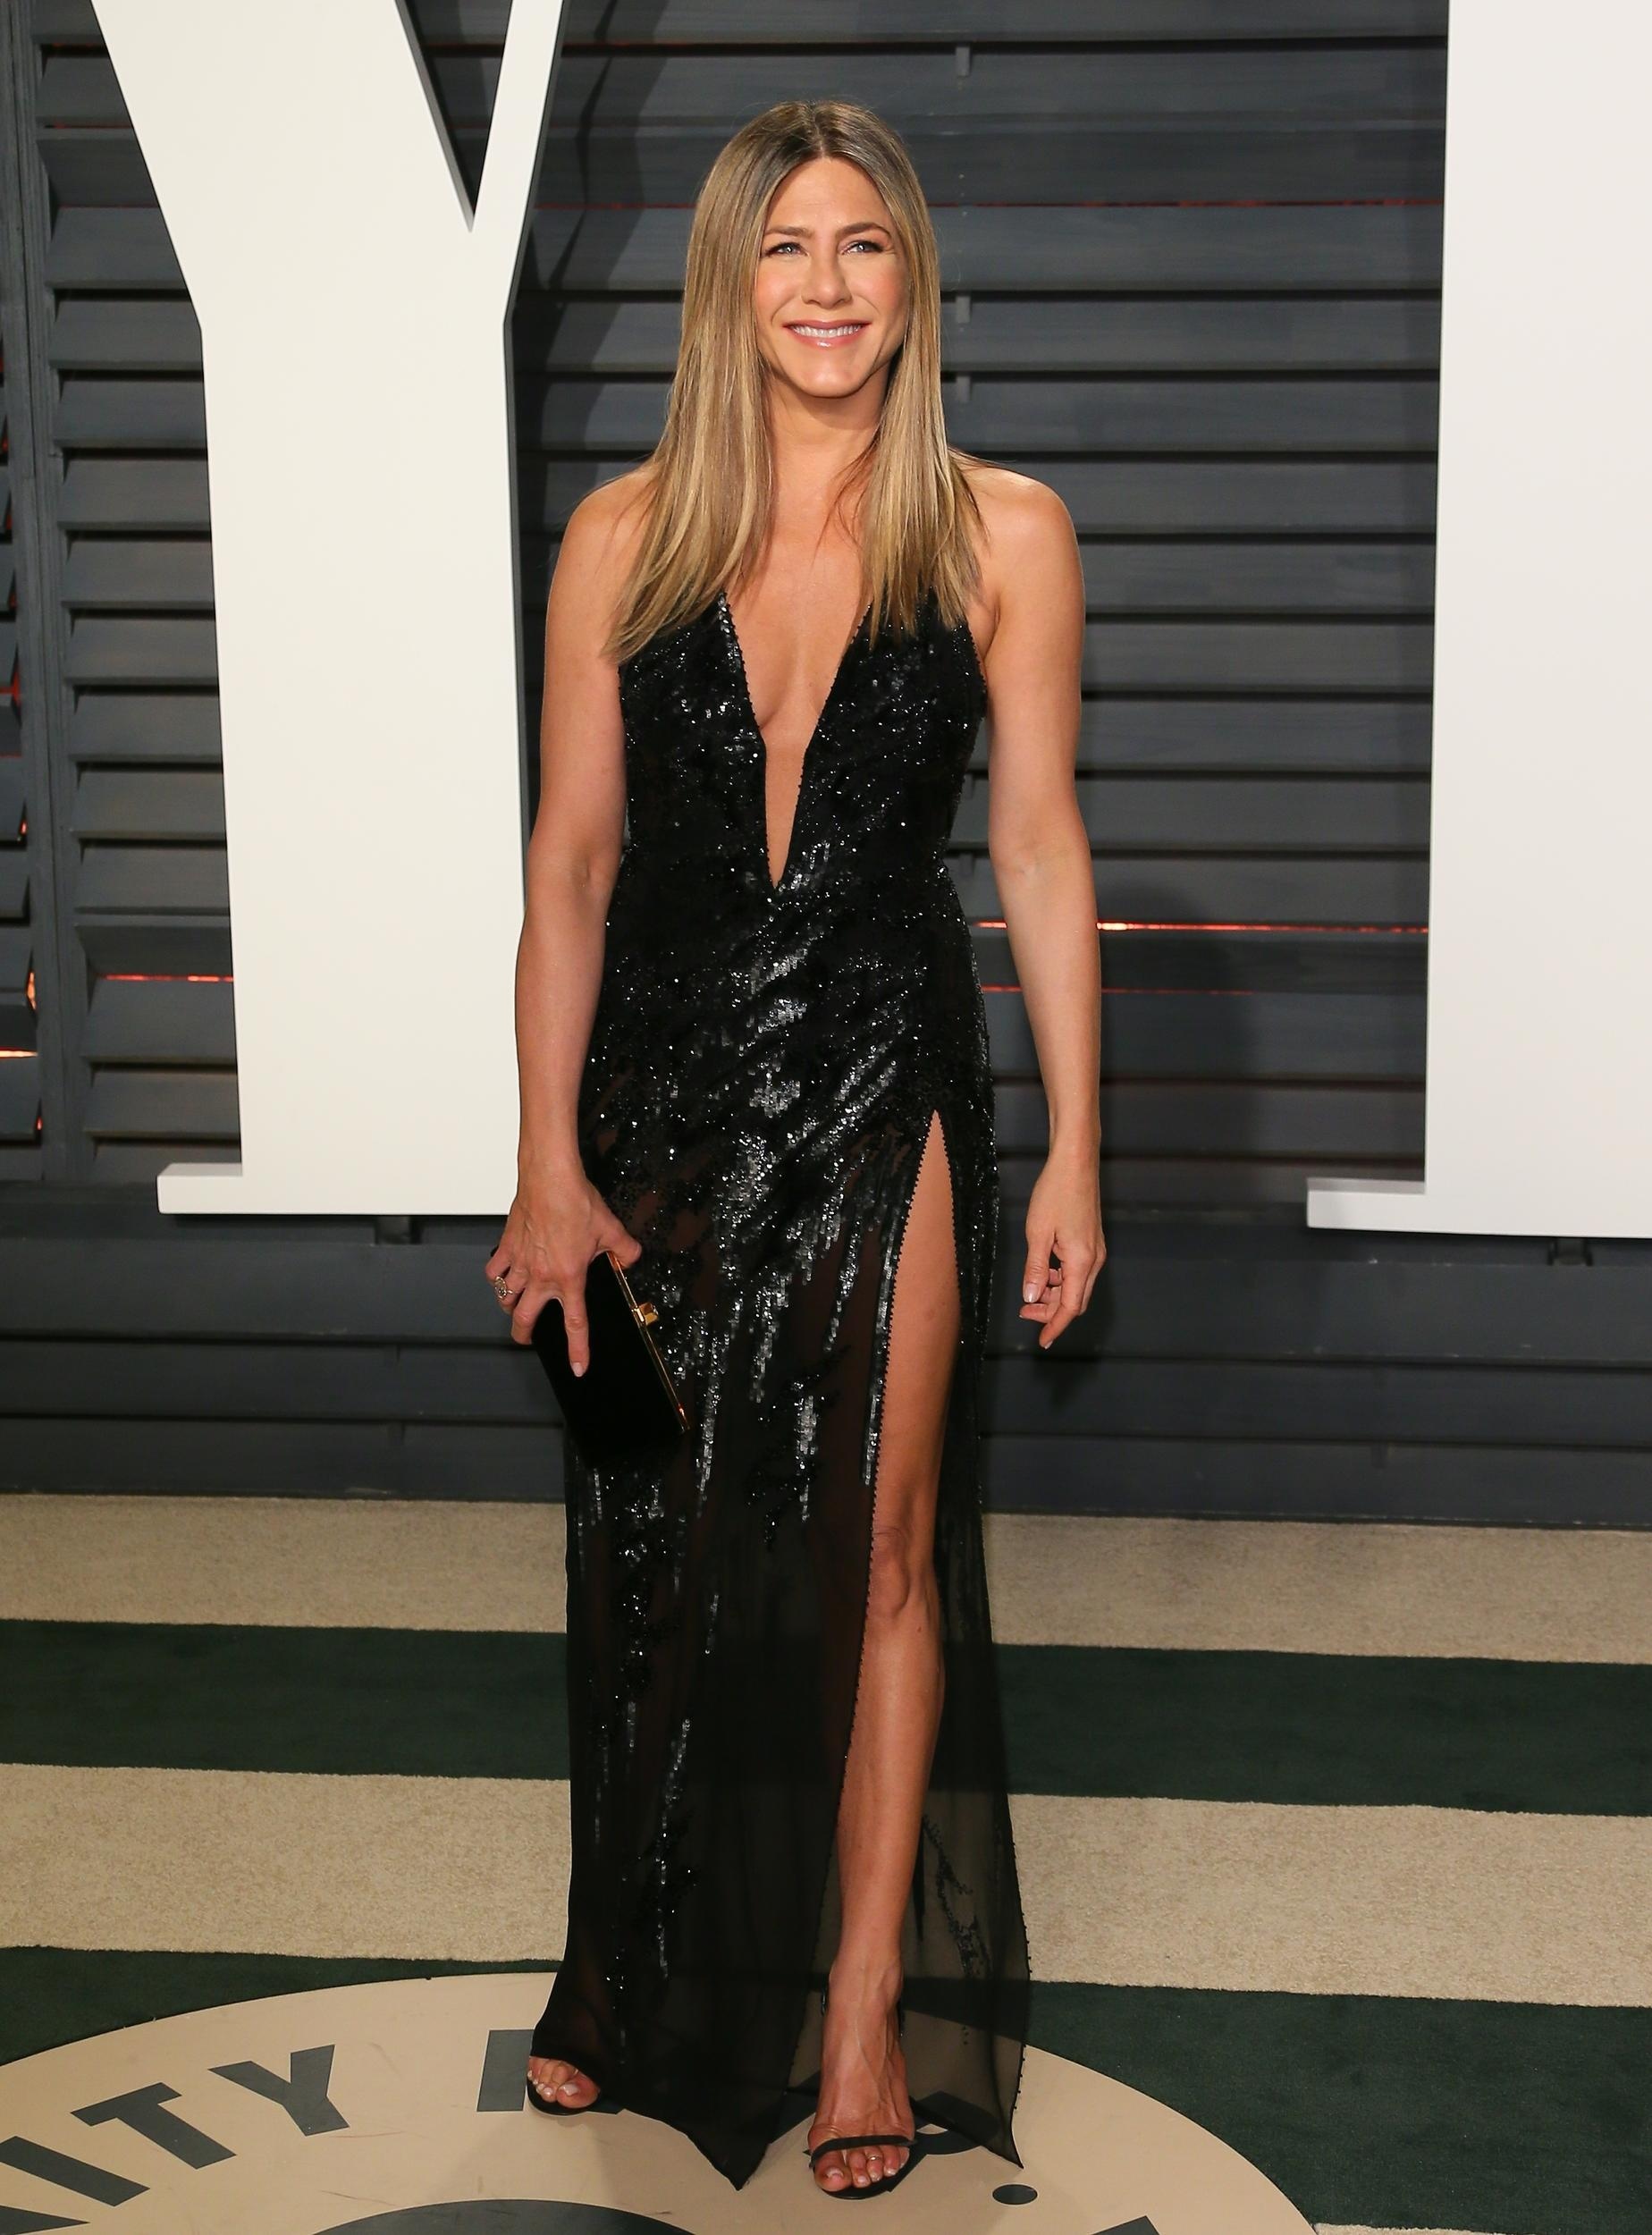 BEVERLY HILLS, CA - FEBRUARY 26: Jennifer Aniston attends the 2017 Vanity Fair Oscar Party hosted by Graydon Carter at Wallis Annenberg Center for the Performing Arts on February 26, 2017 in Beverly Hills, California. (Photo by JB Lacroix/WireImage)